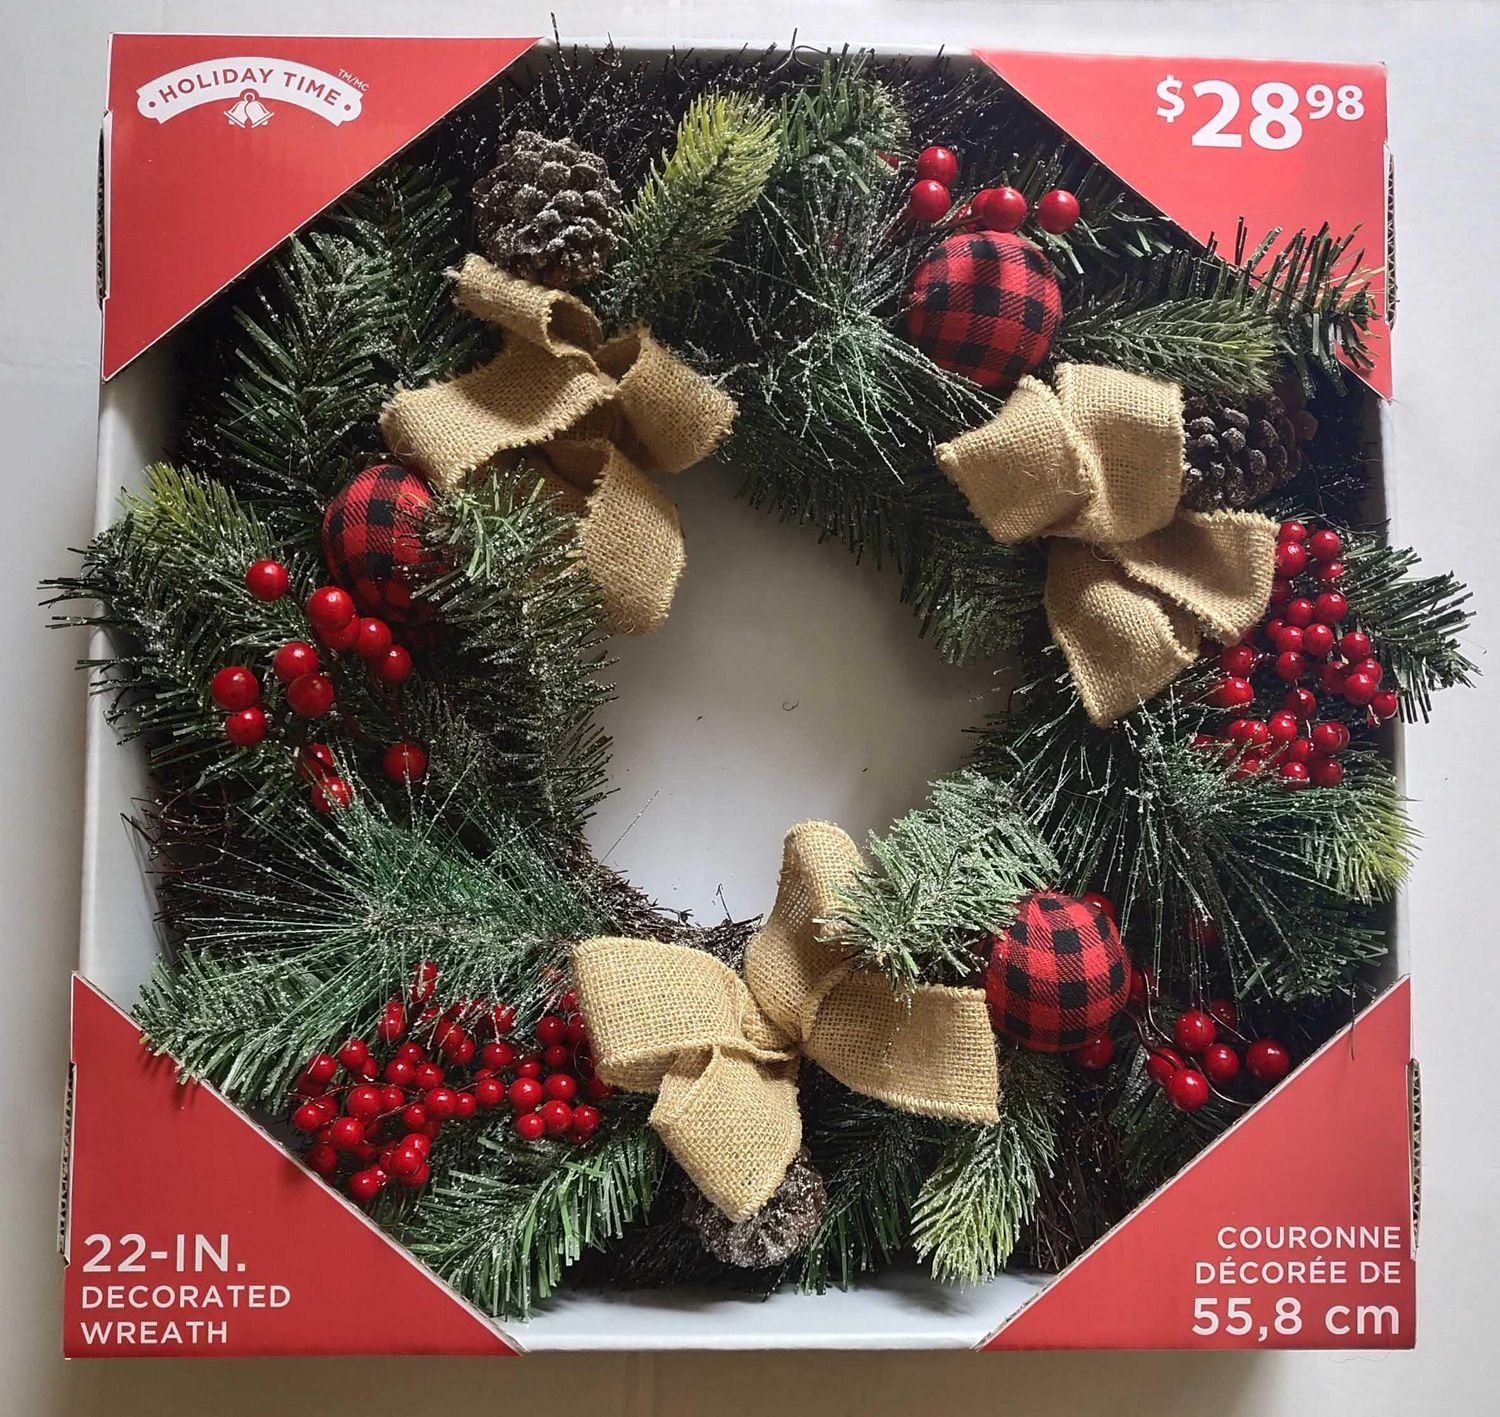 Holiday Time 22-IN. DECORATED WREATH | Walmart Canada